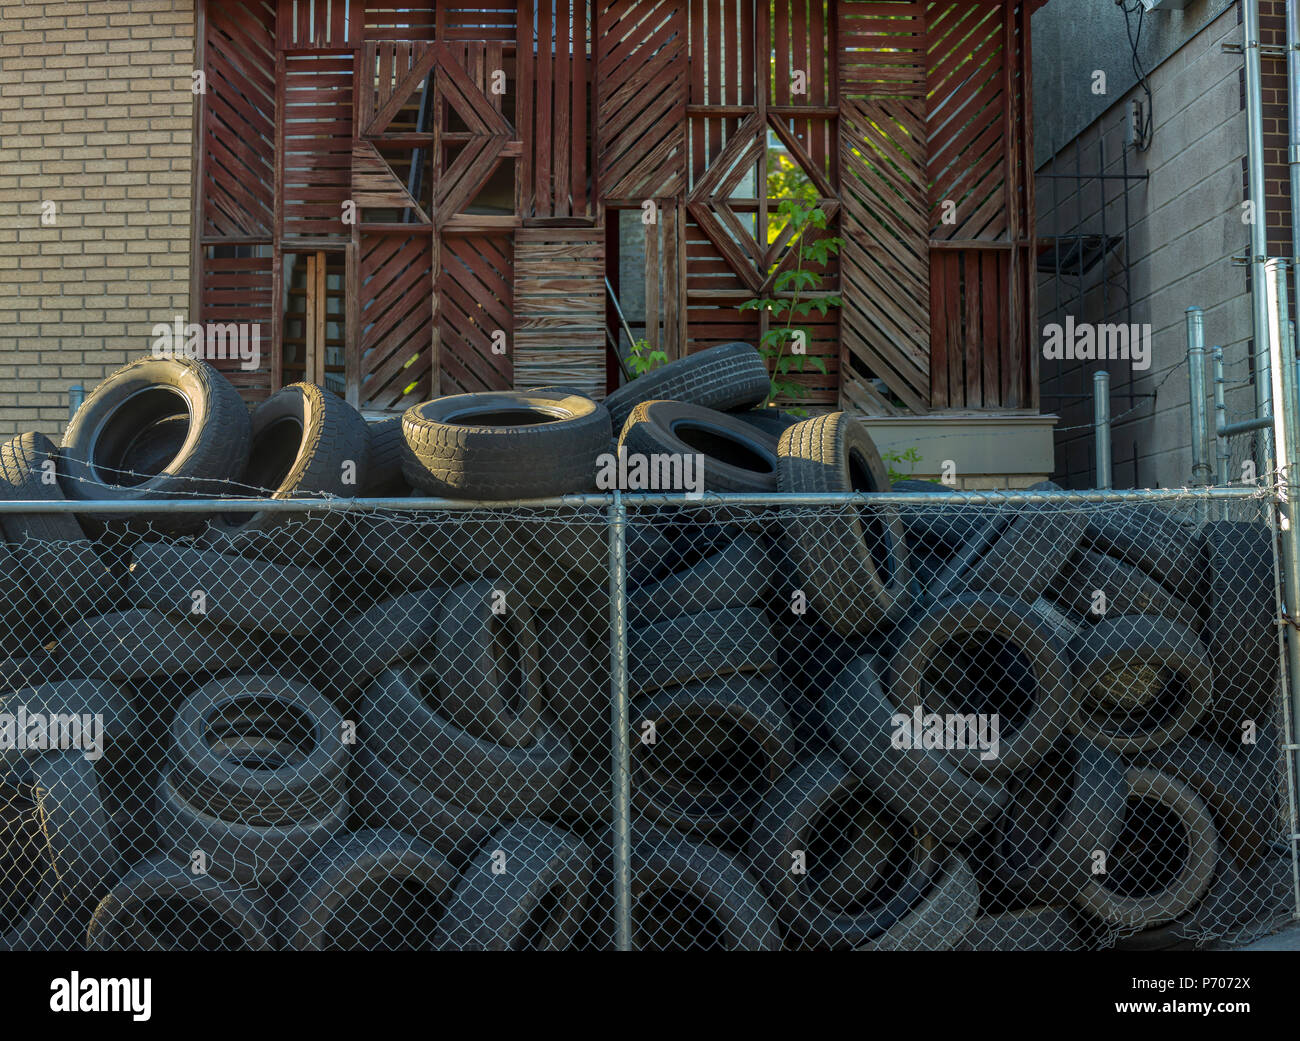 Tires discarded outside shop in downtown - Stock Image